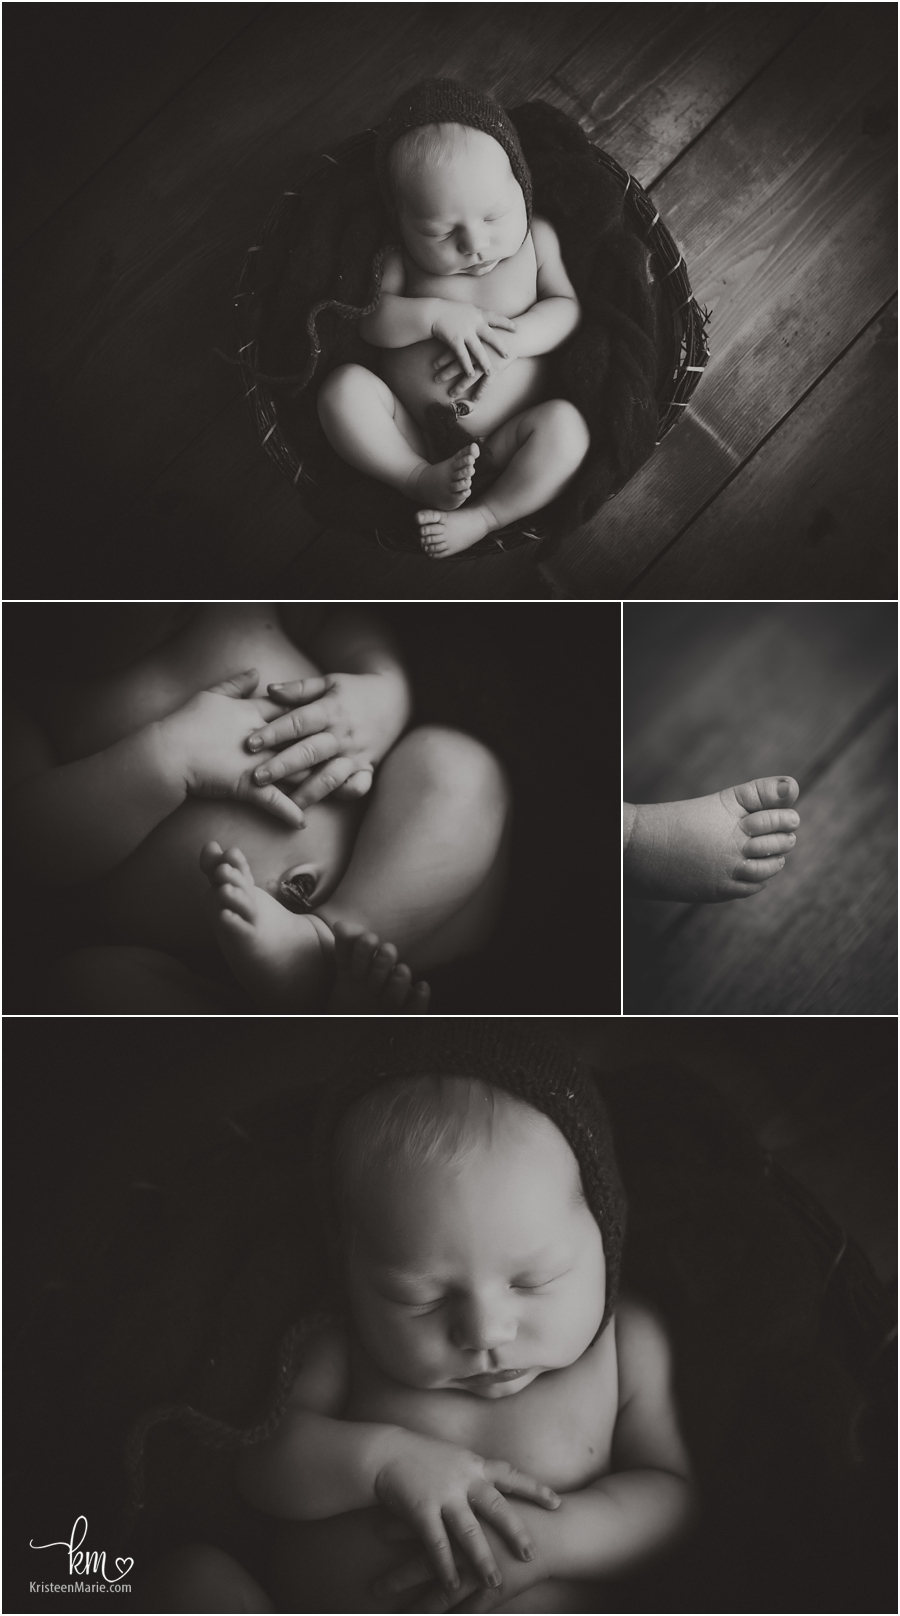 black and white newborn photography pictures - very moody